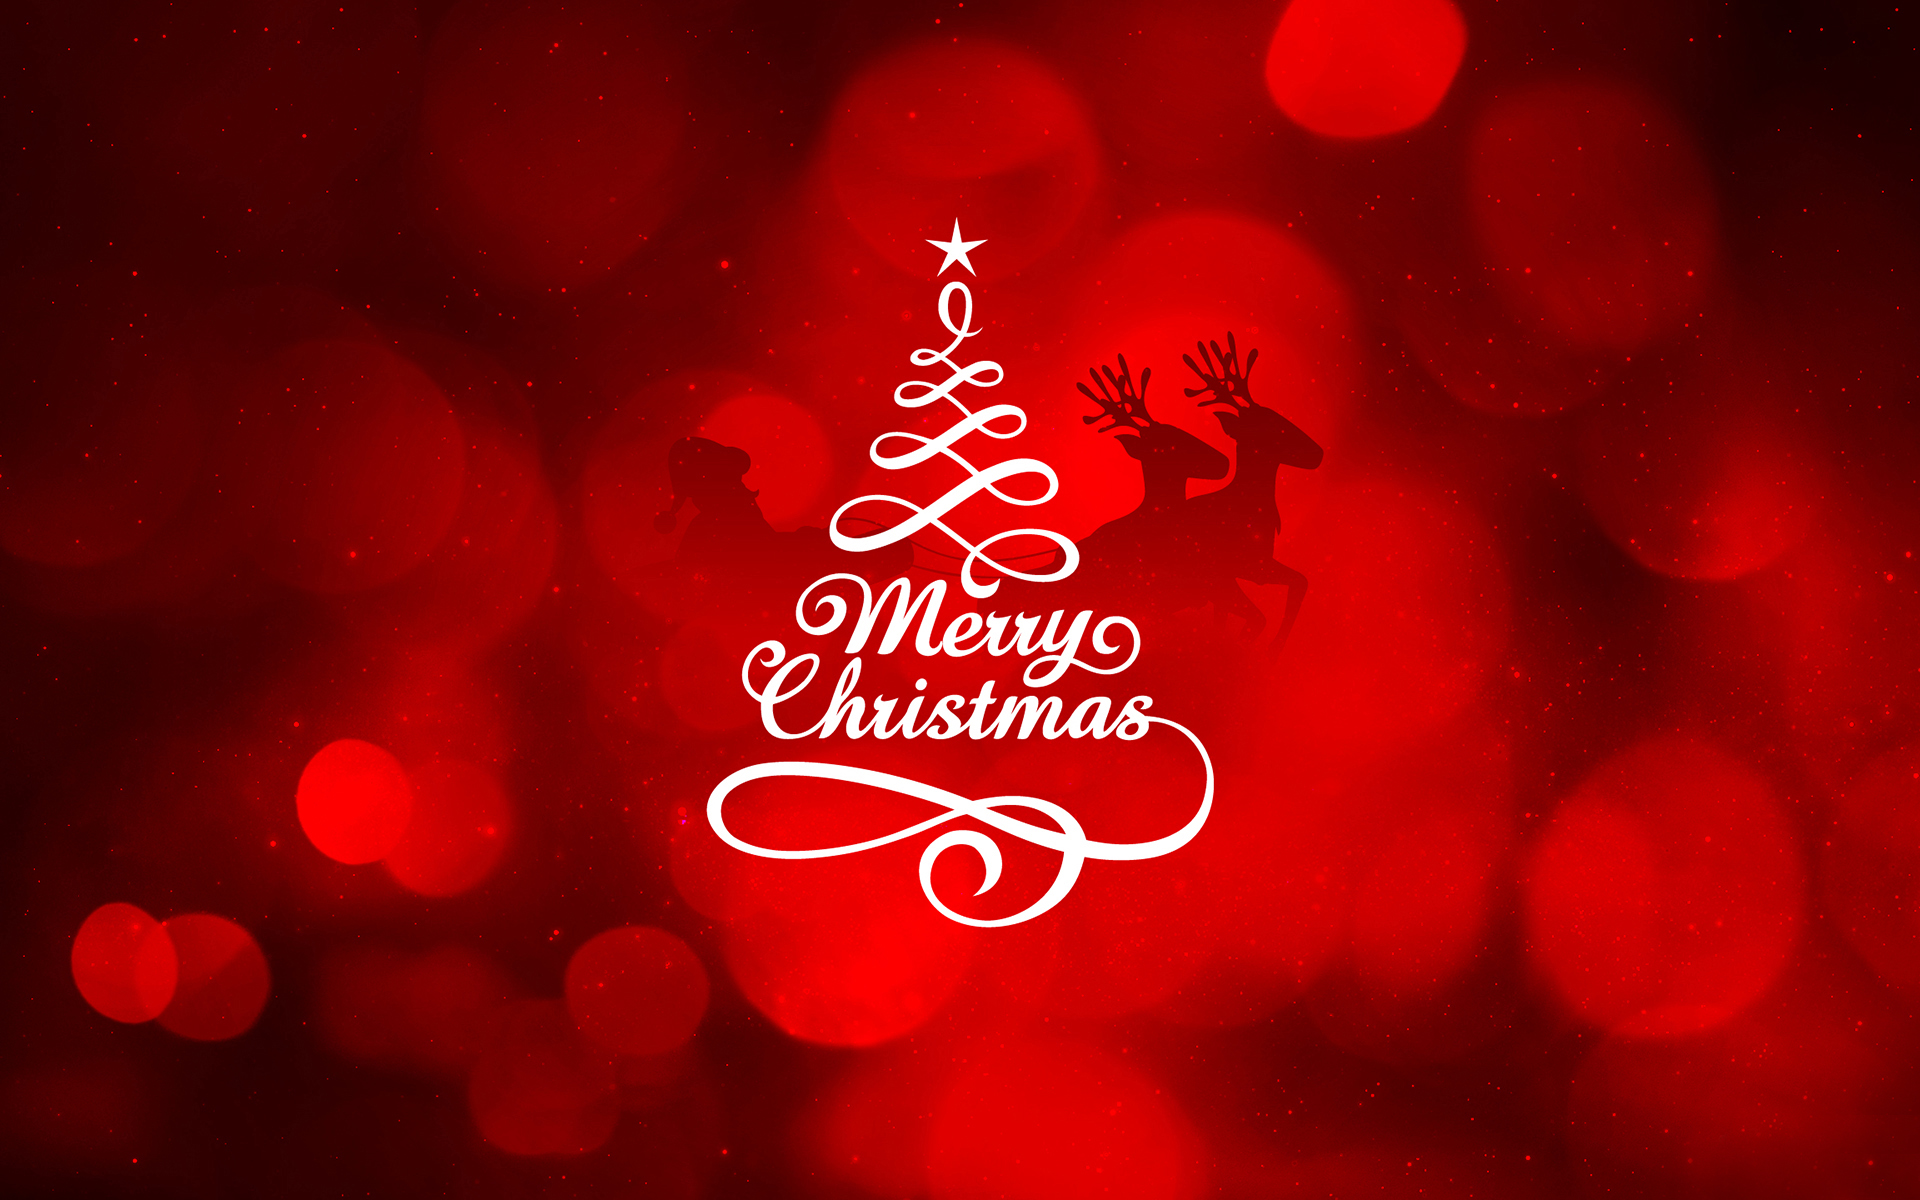 Merry christmas quotes wishes sms greetings w images 2016 merry christmas sms messages kristyandbryce Choice Image